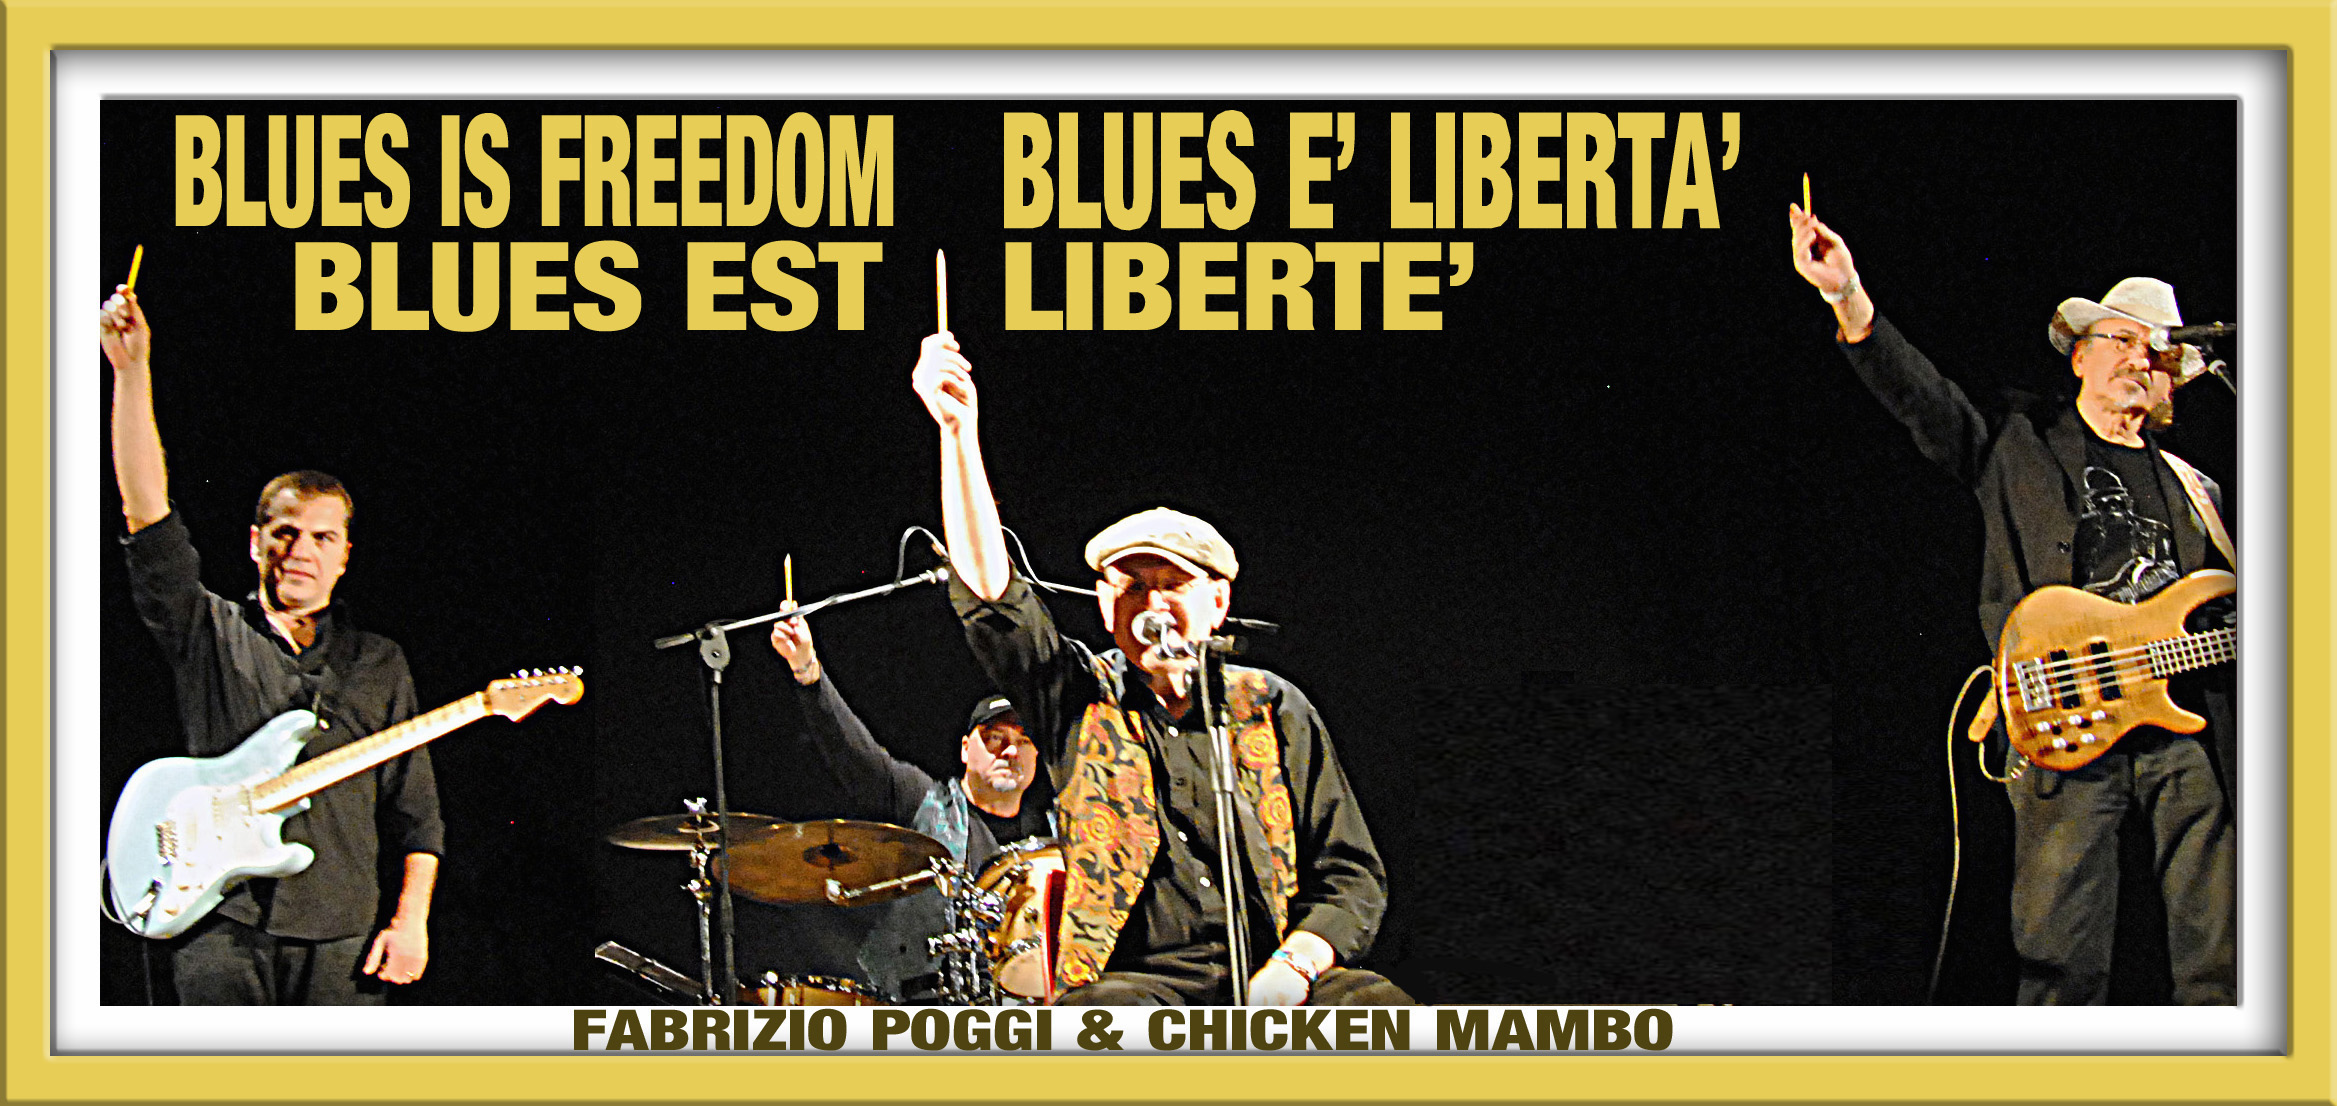 Fabrizio Poggi & Chicken Mambo Blues is freedom